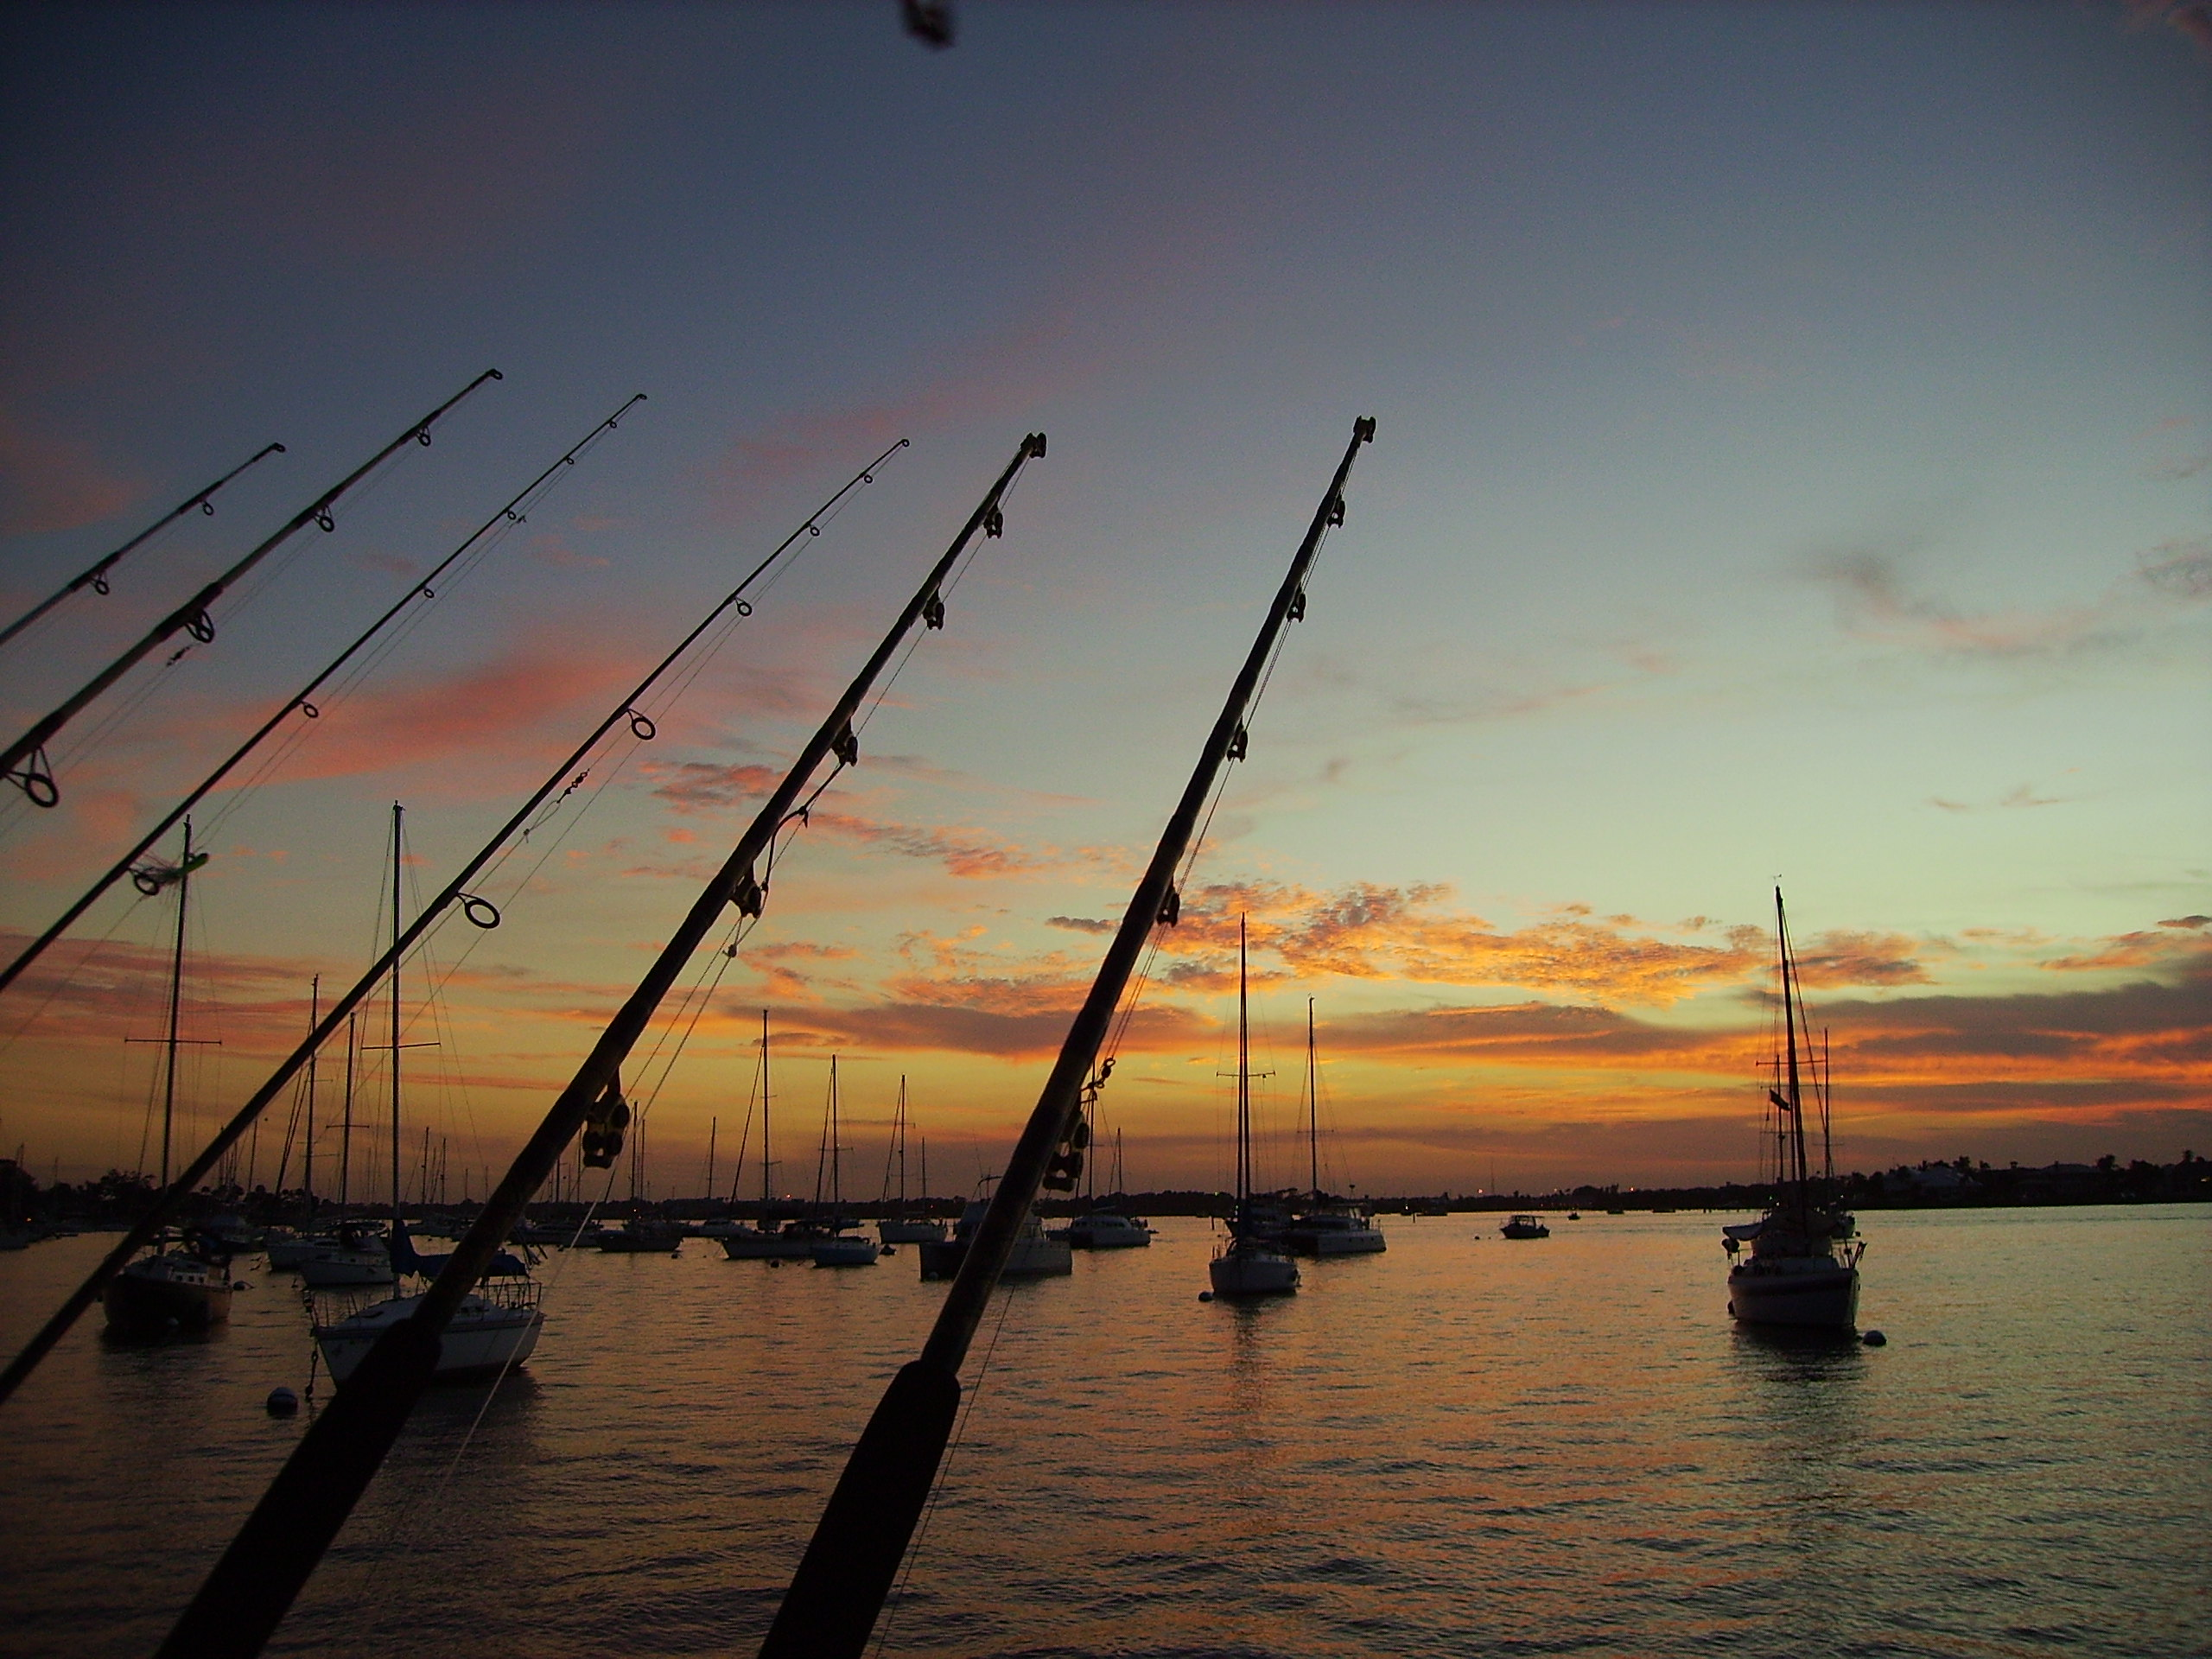 sailboat-sunset.jpg